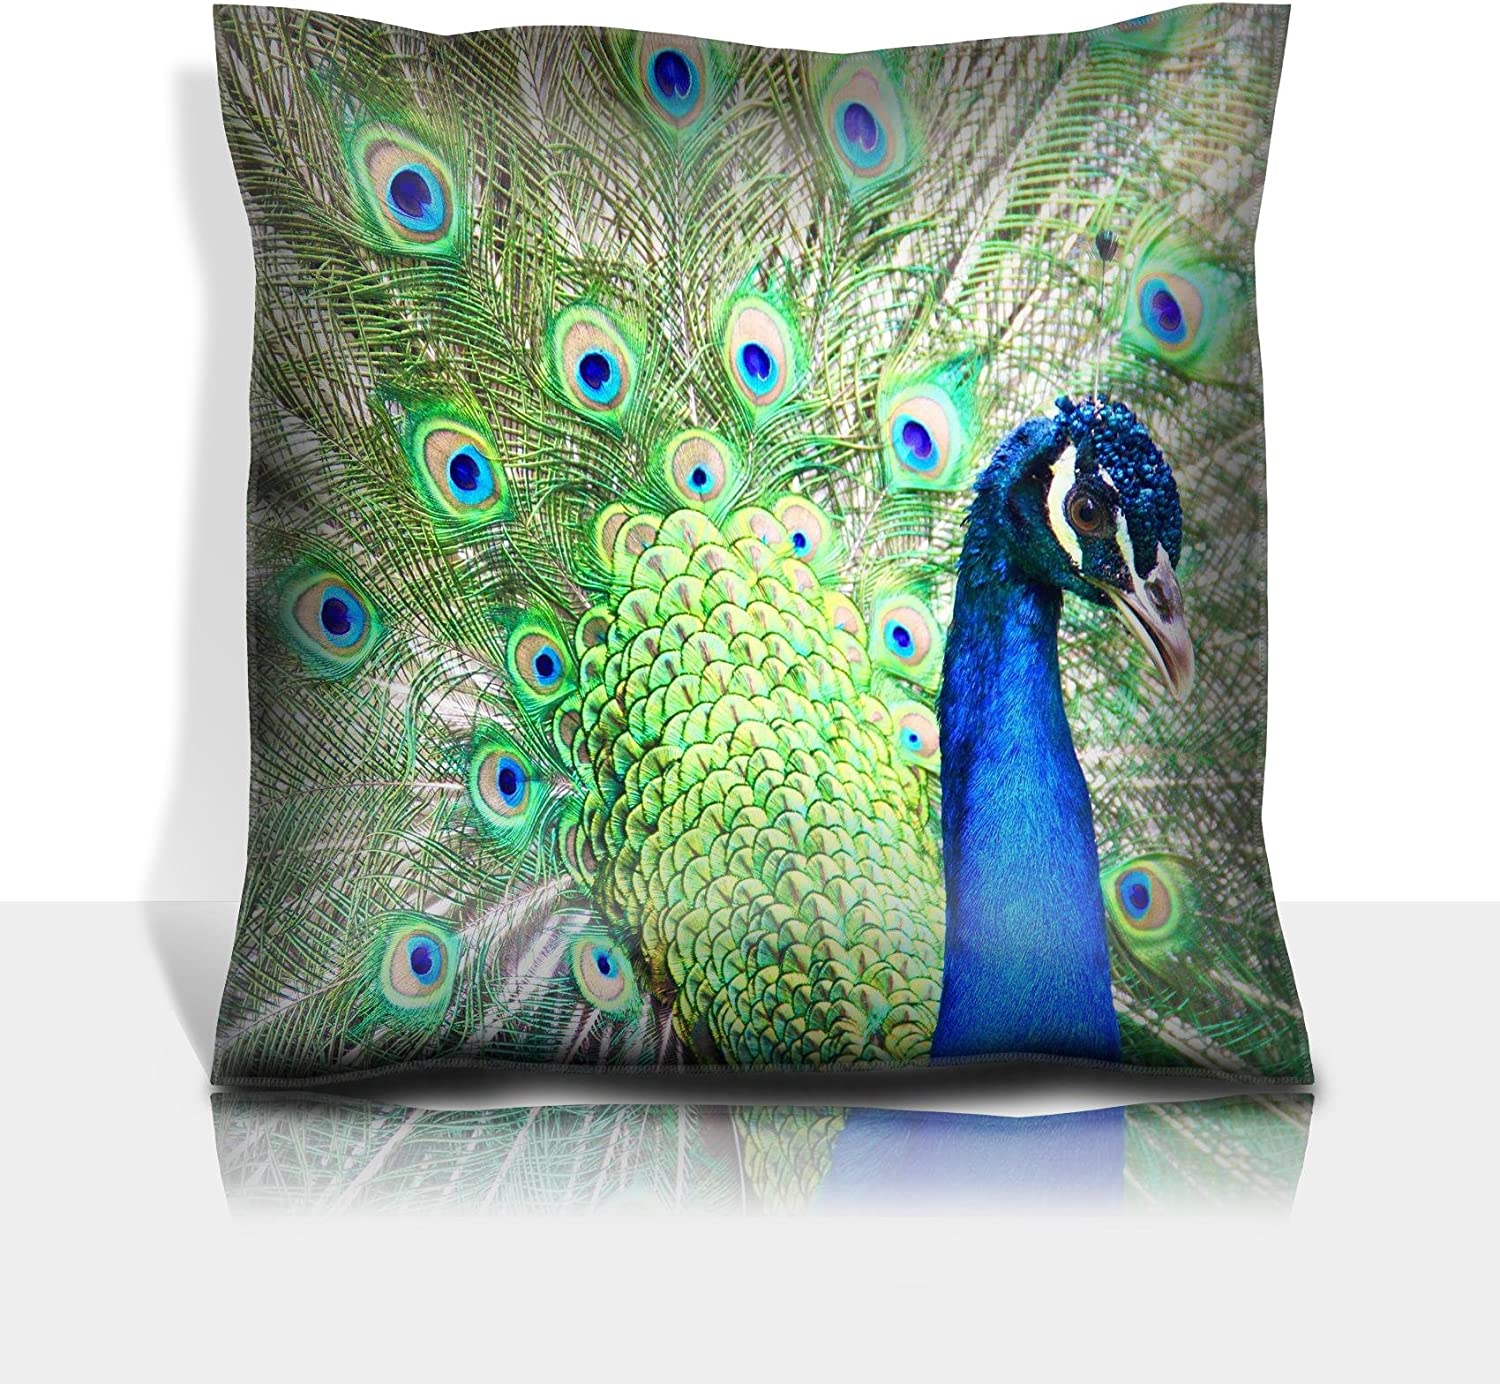 Luxlady Throw Pillowcase Polyester Satin Comfortable Decorative Soft Pillow Covers Protector Sofa 16x16, 1 Pack Image ID: 20313378 pecock